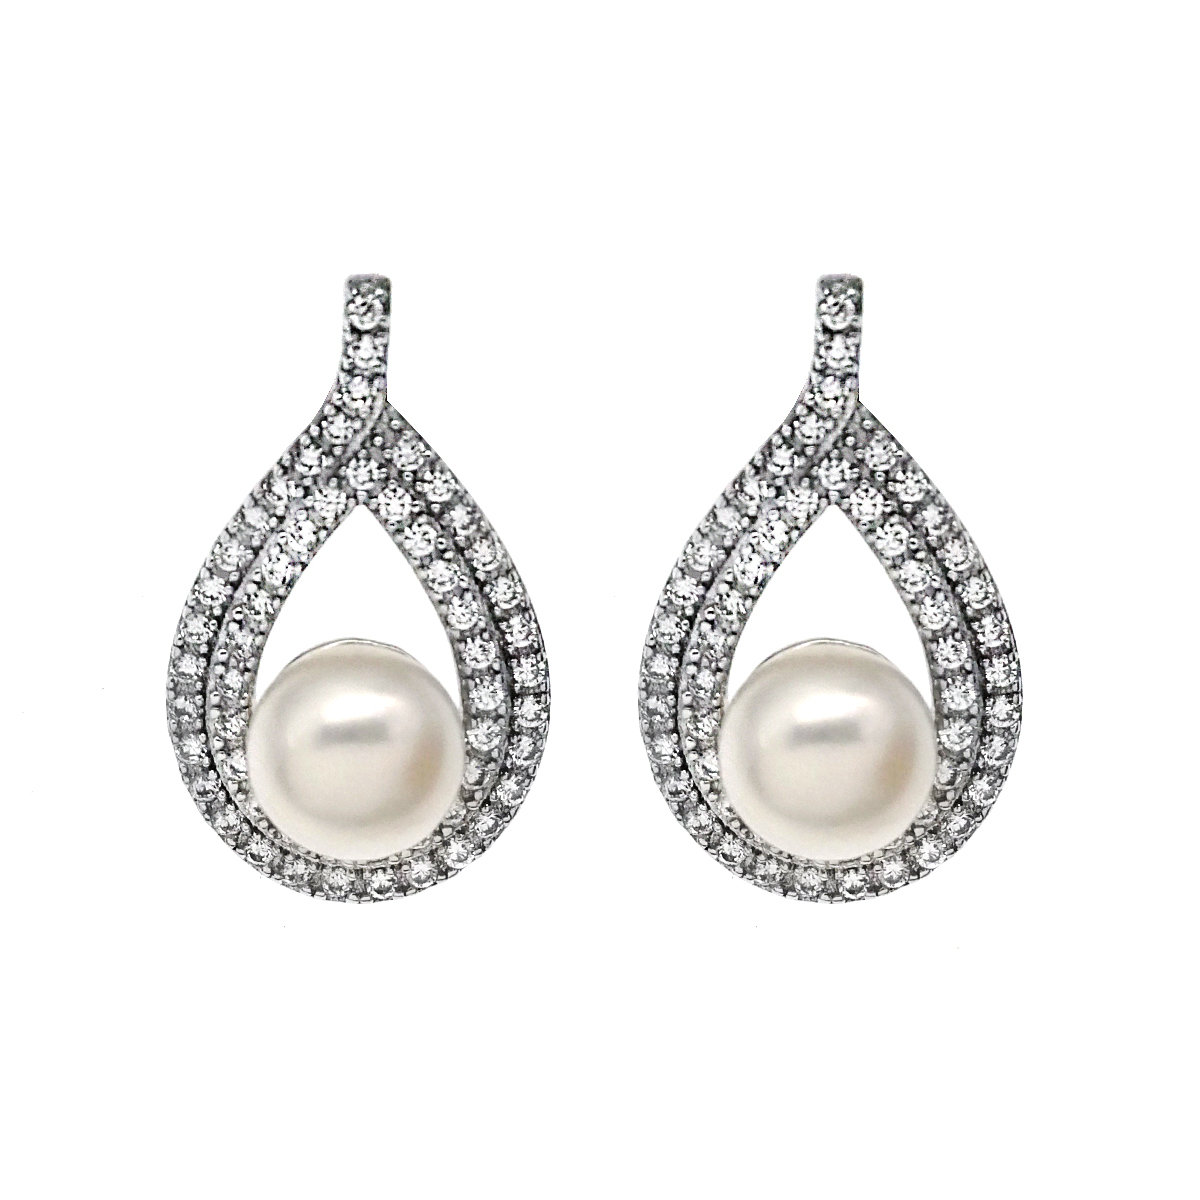 Moment- 925 Silver with Cultured fresh water pearl Earring